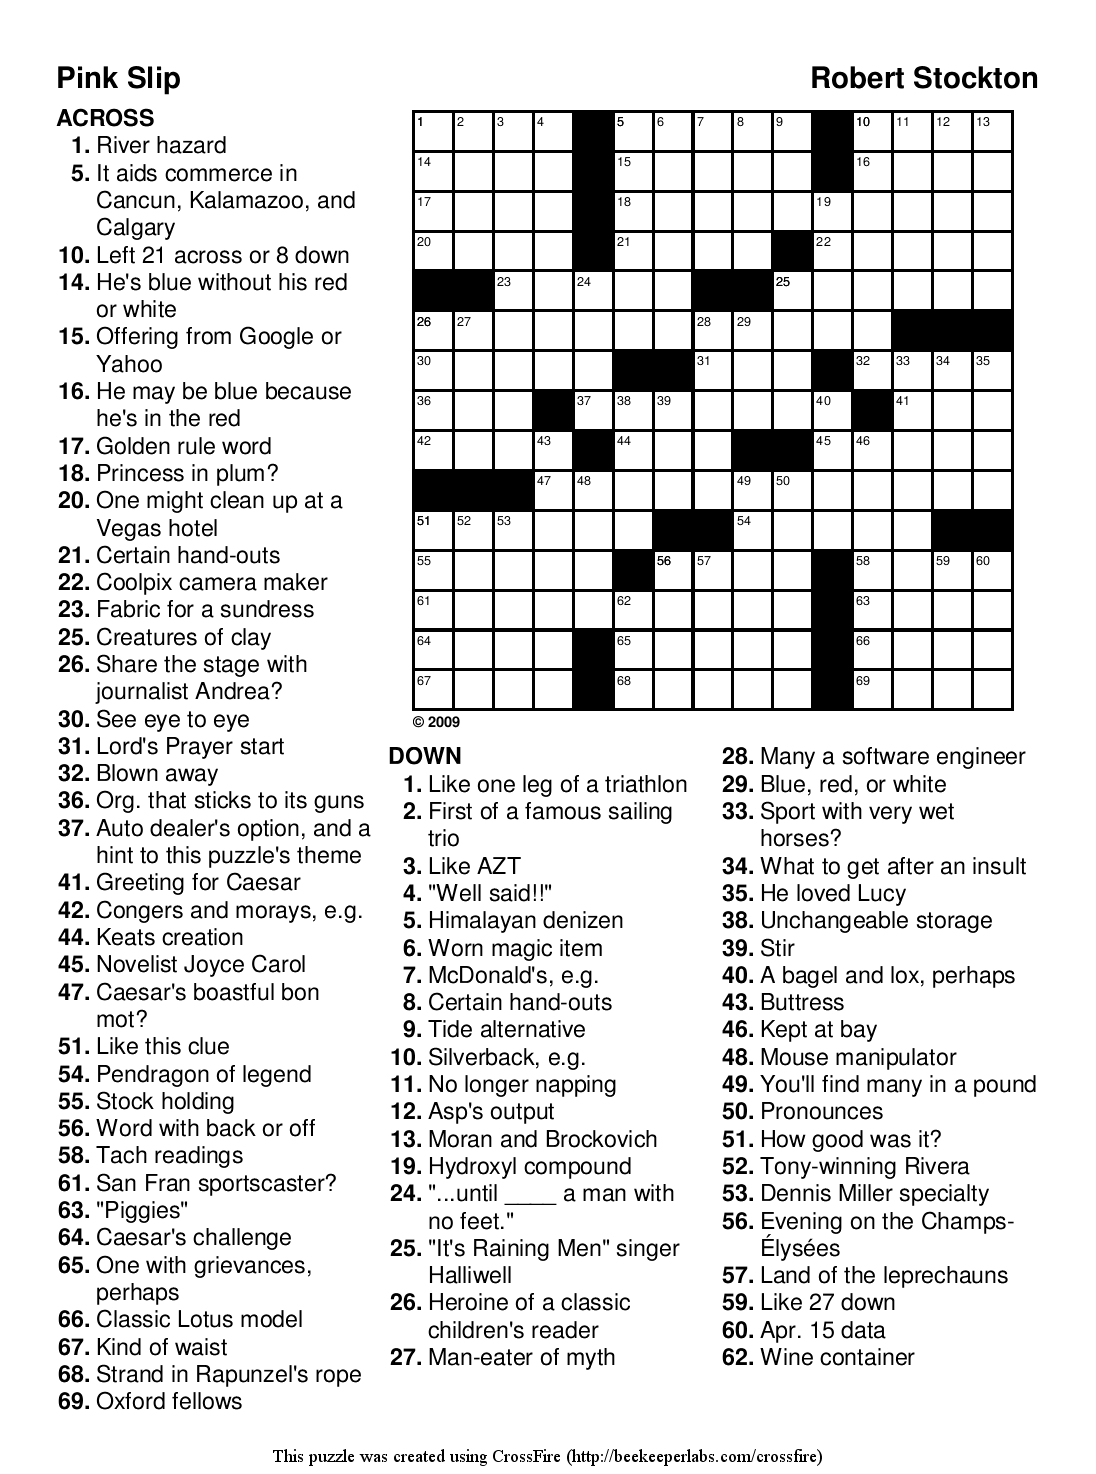 Printable Puzzles For Adults | Easy Word Puzzles Printable Festivals - Free Easy Printable Crossword Puzzles For Adults Uk